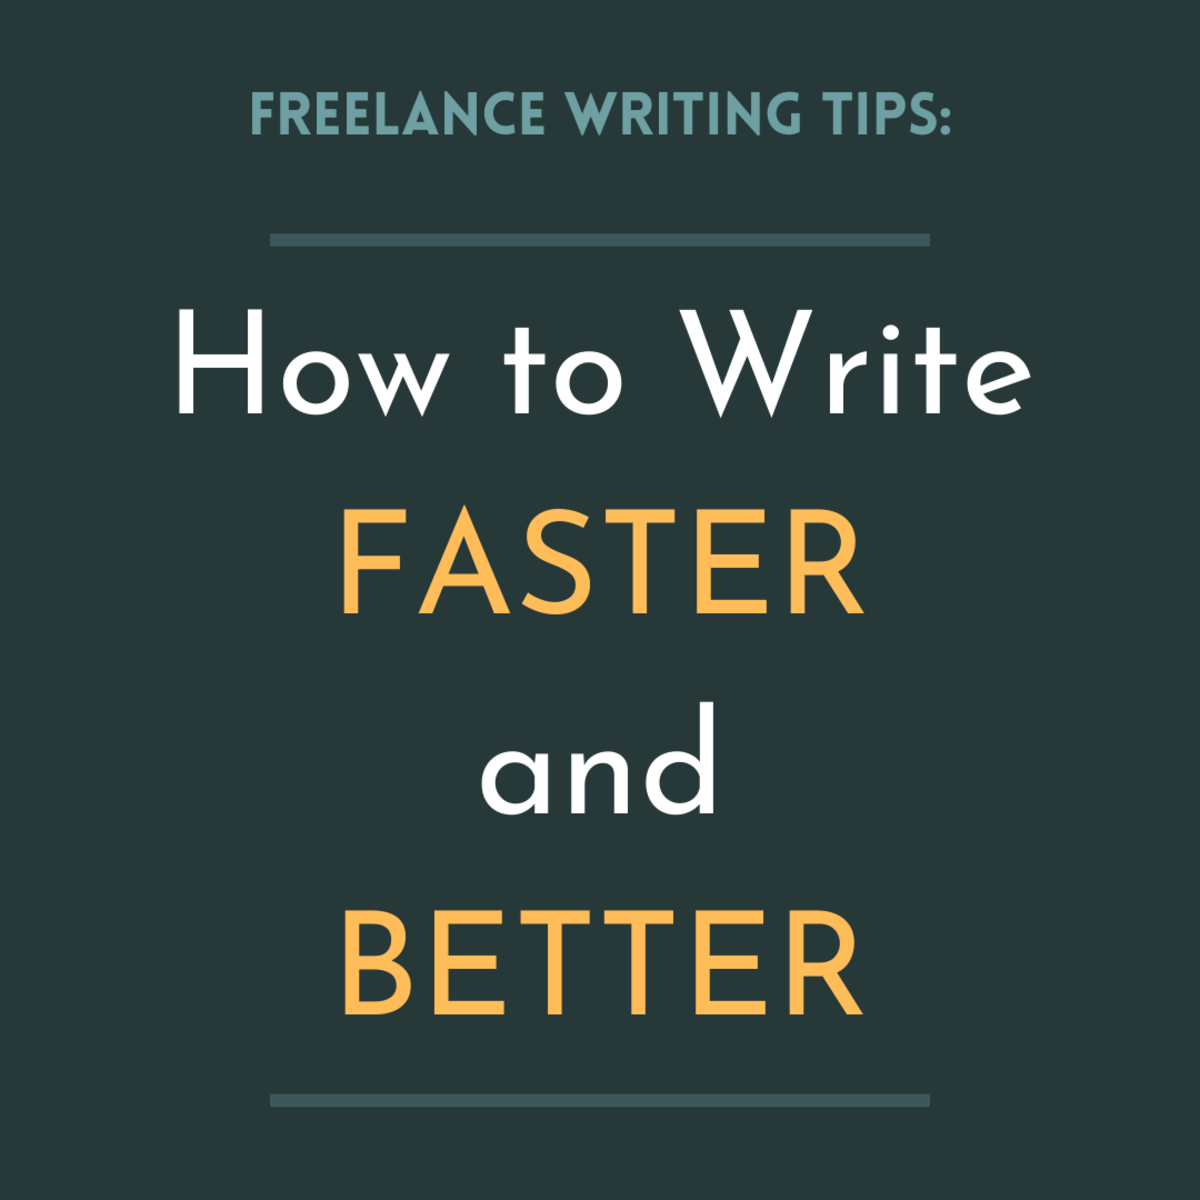 Get some advice on writing high-quality articles quickly as a freelancer.